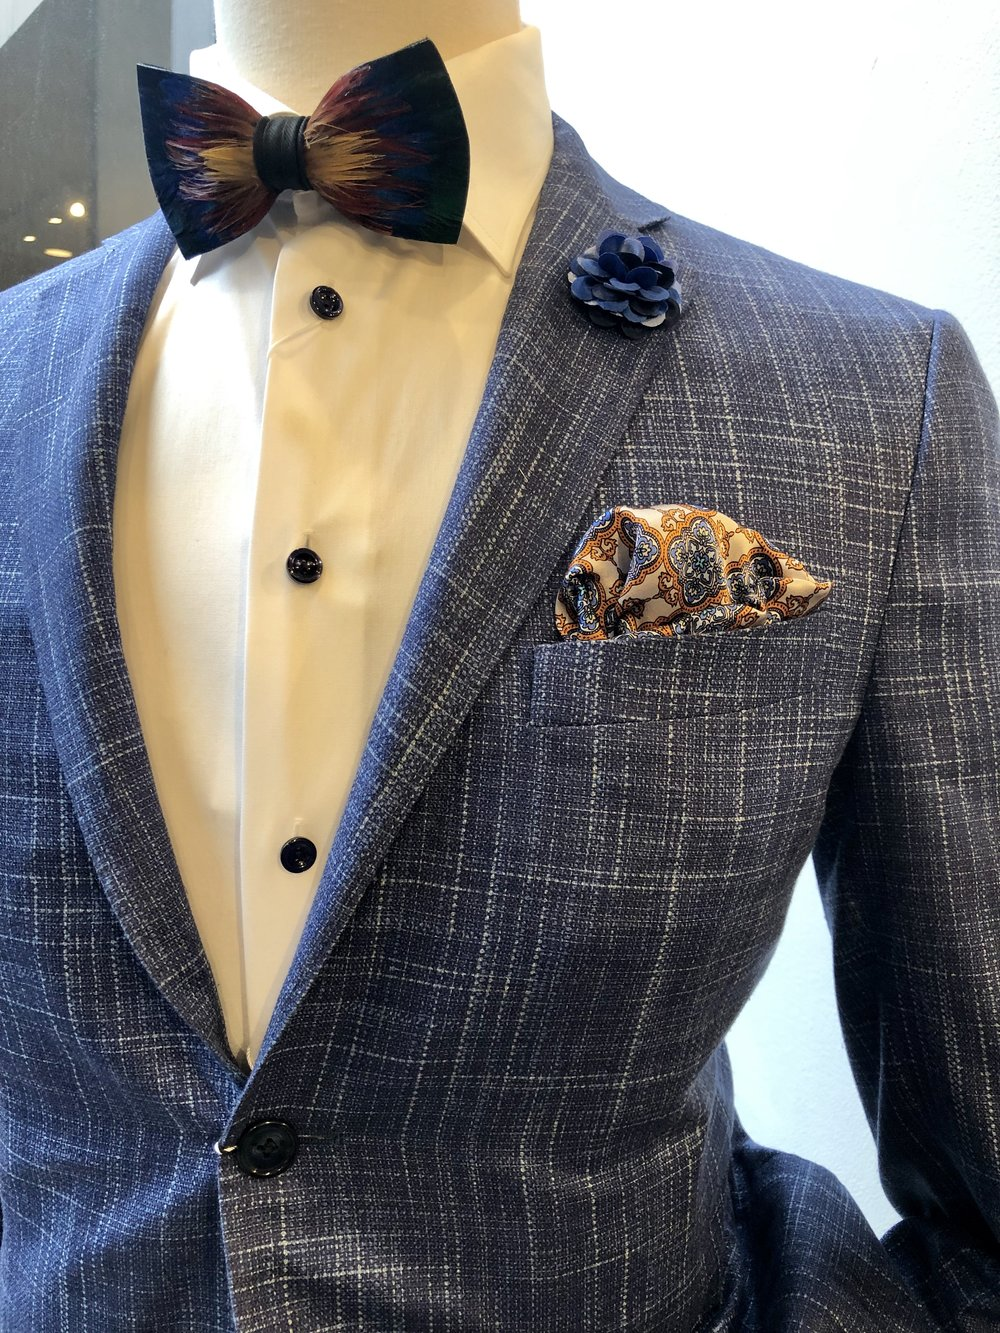 how-to-style-a-suit.jpg